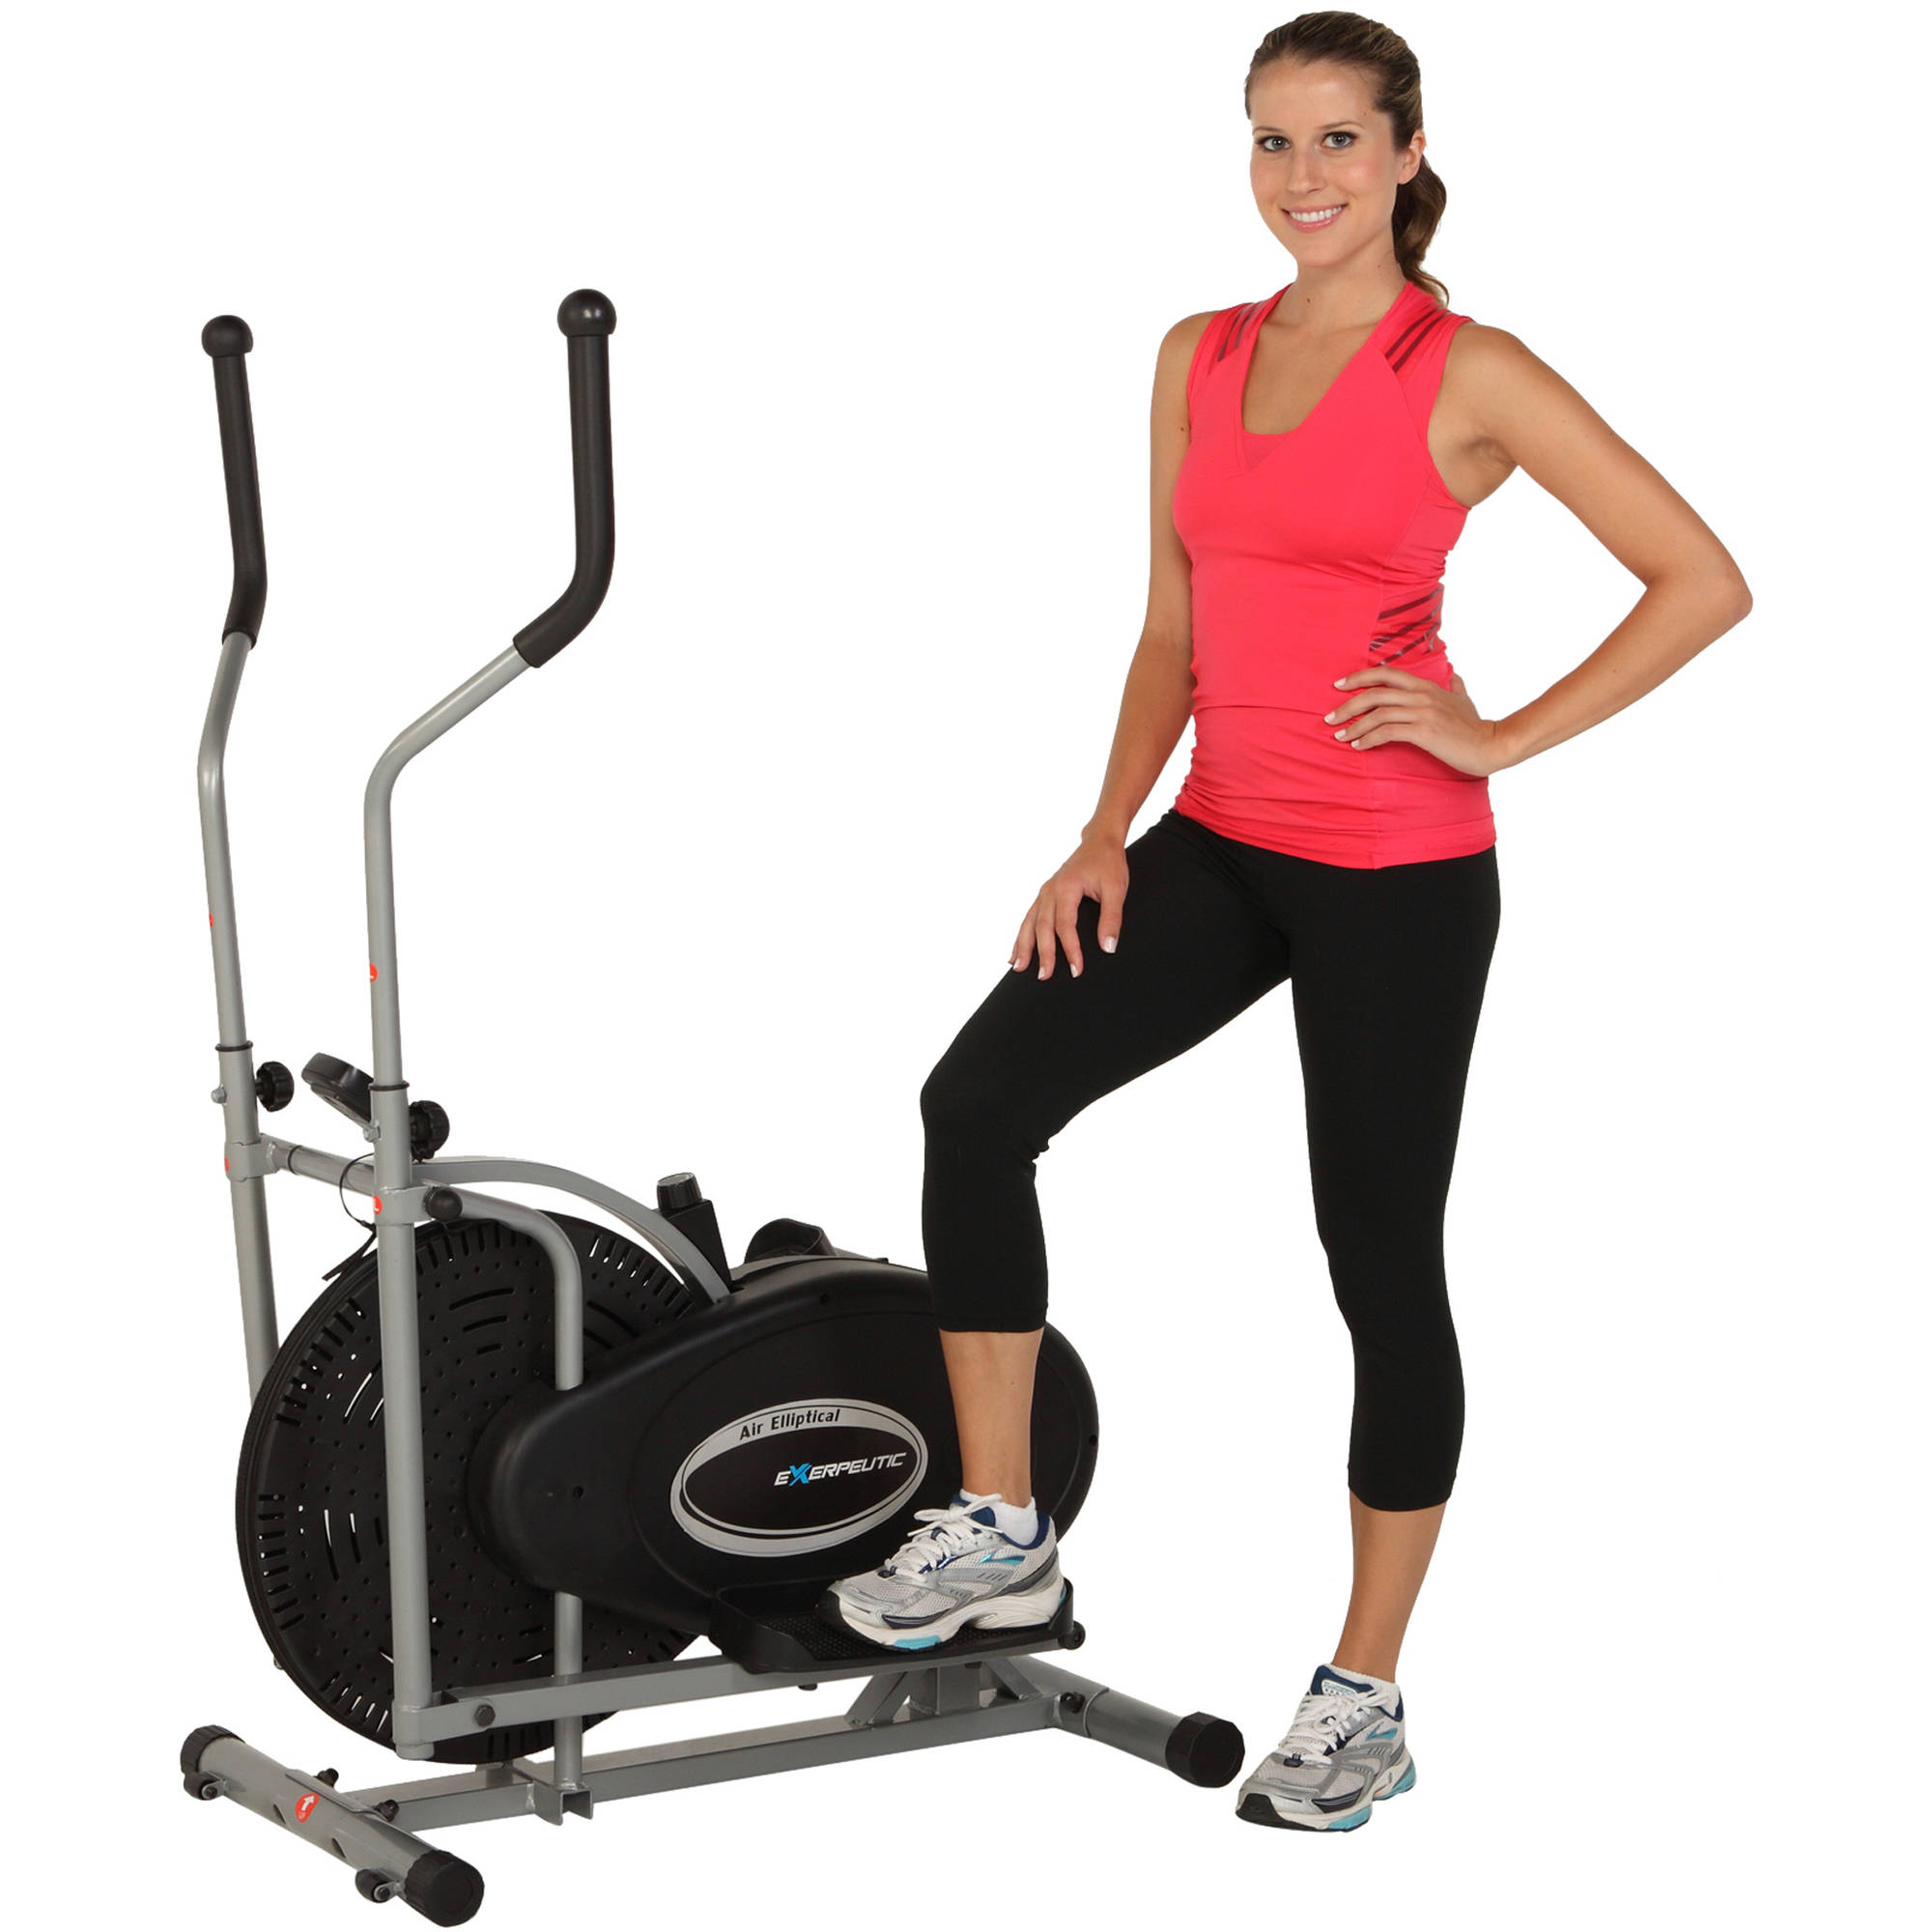 Exerpeutic 260 Air Elliptical